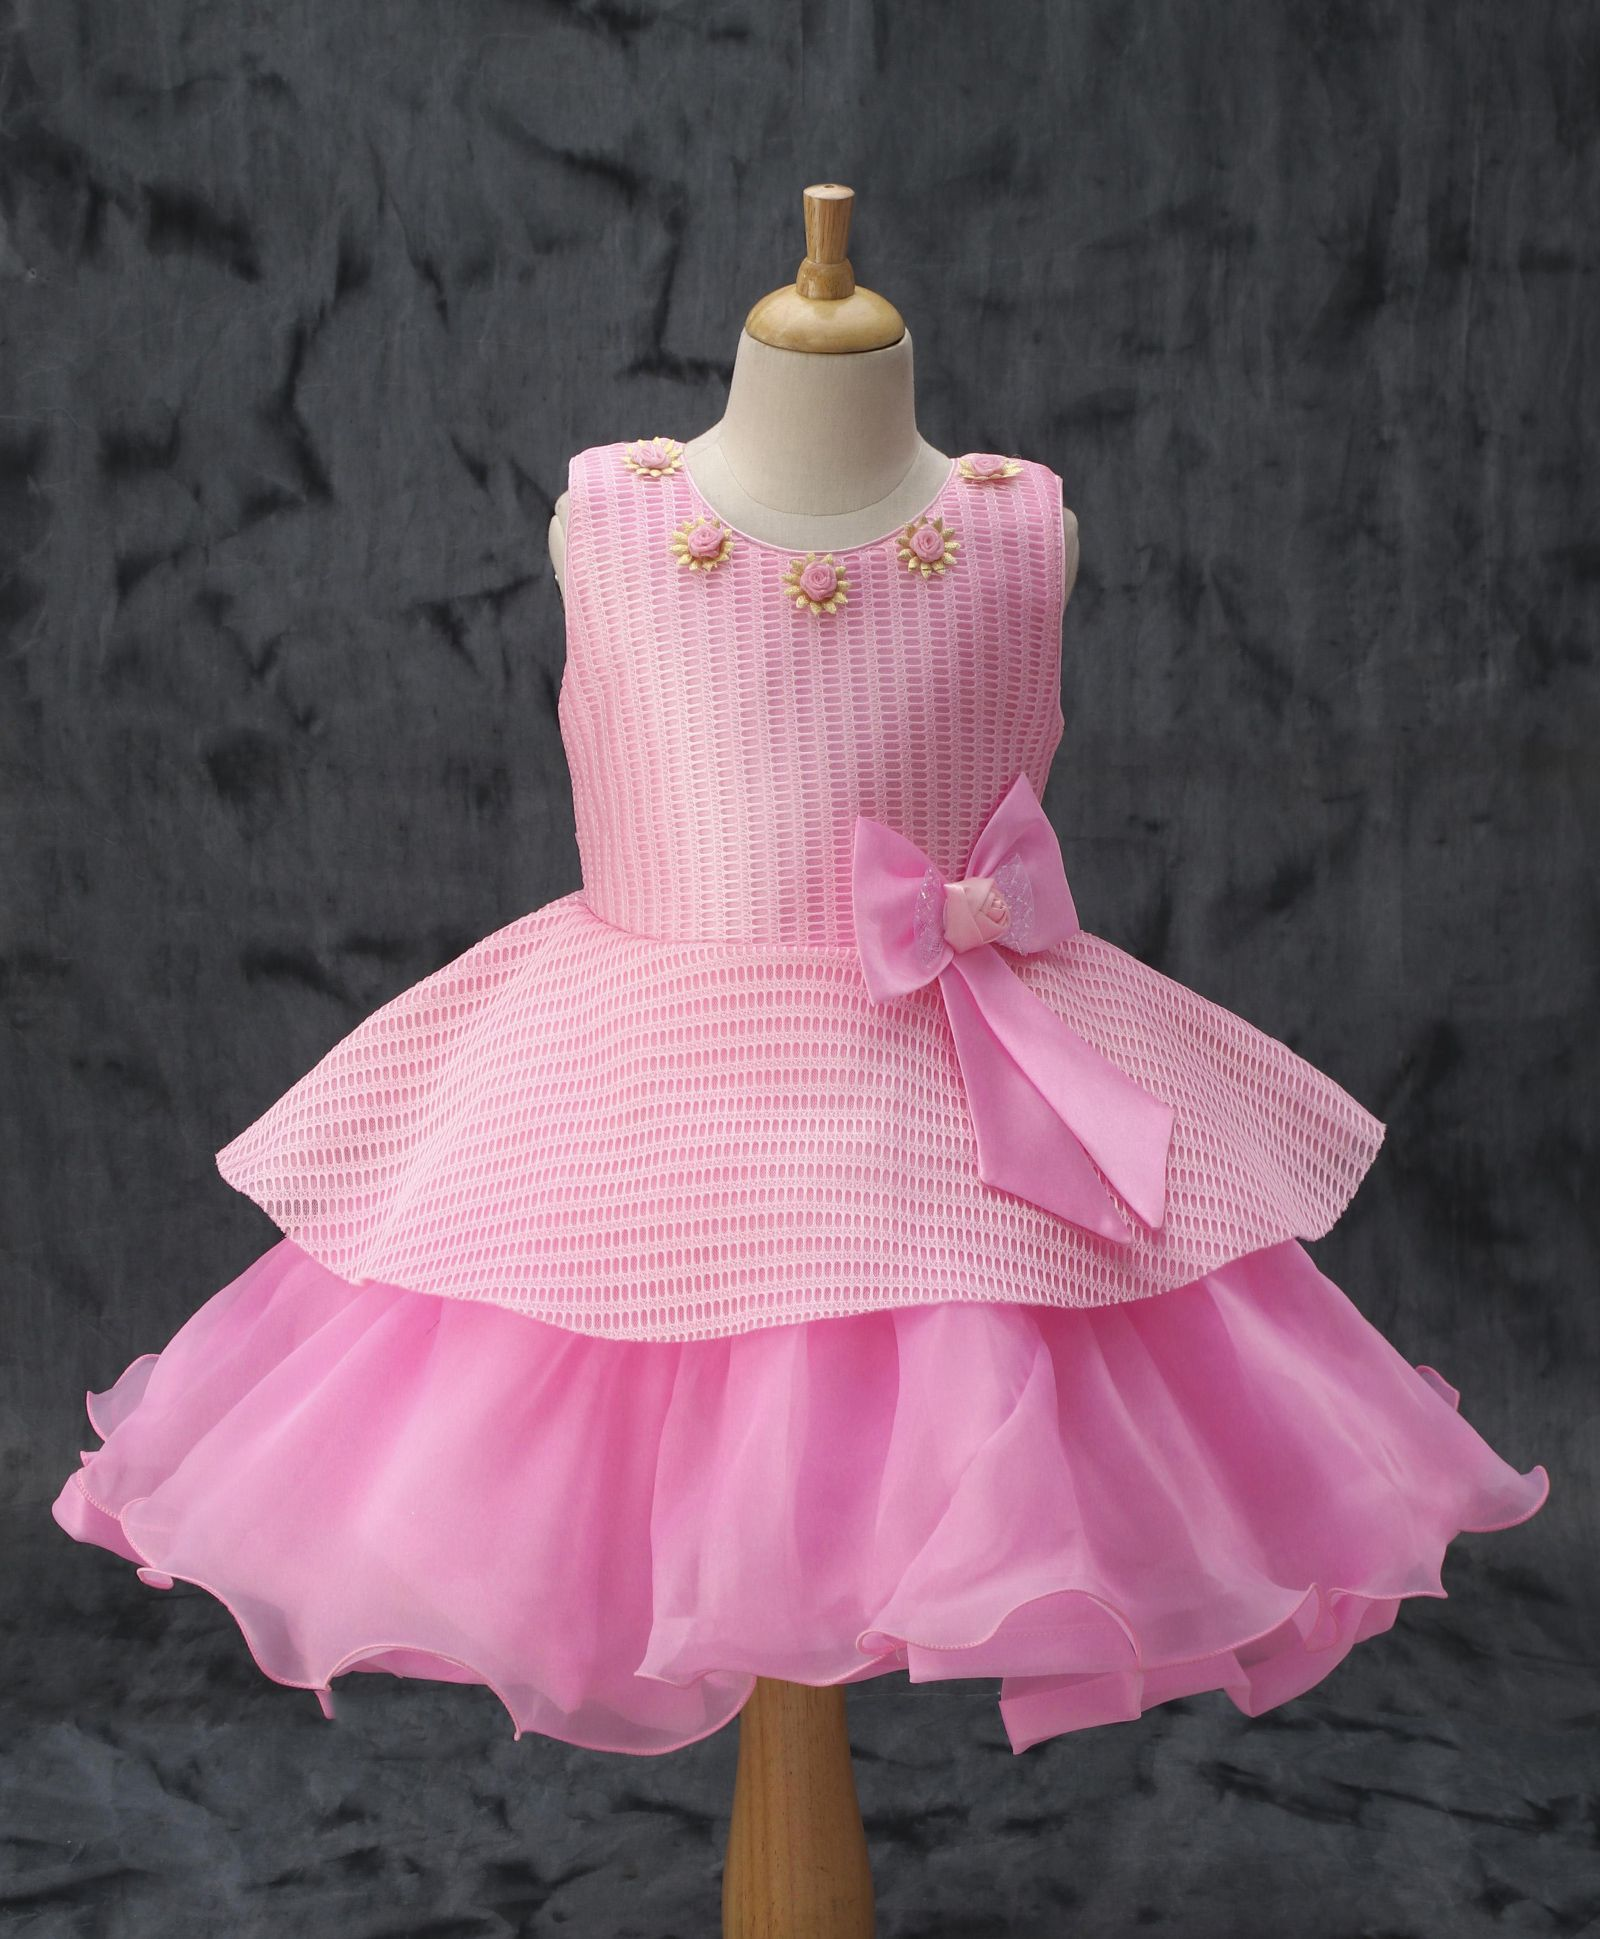 e39d85479656d Buy Enfance Layered Ruffle Dress With Waist Bow Pink for Girls (2-3 Years)  Online in India, Shop at FirstCry.com - 1969712